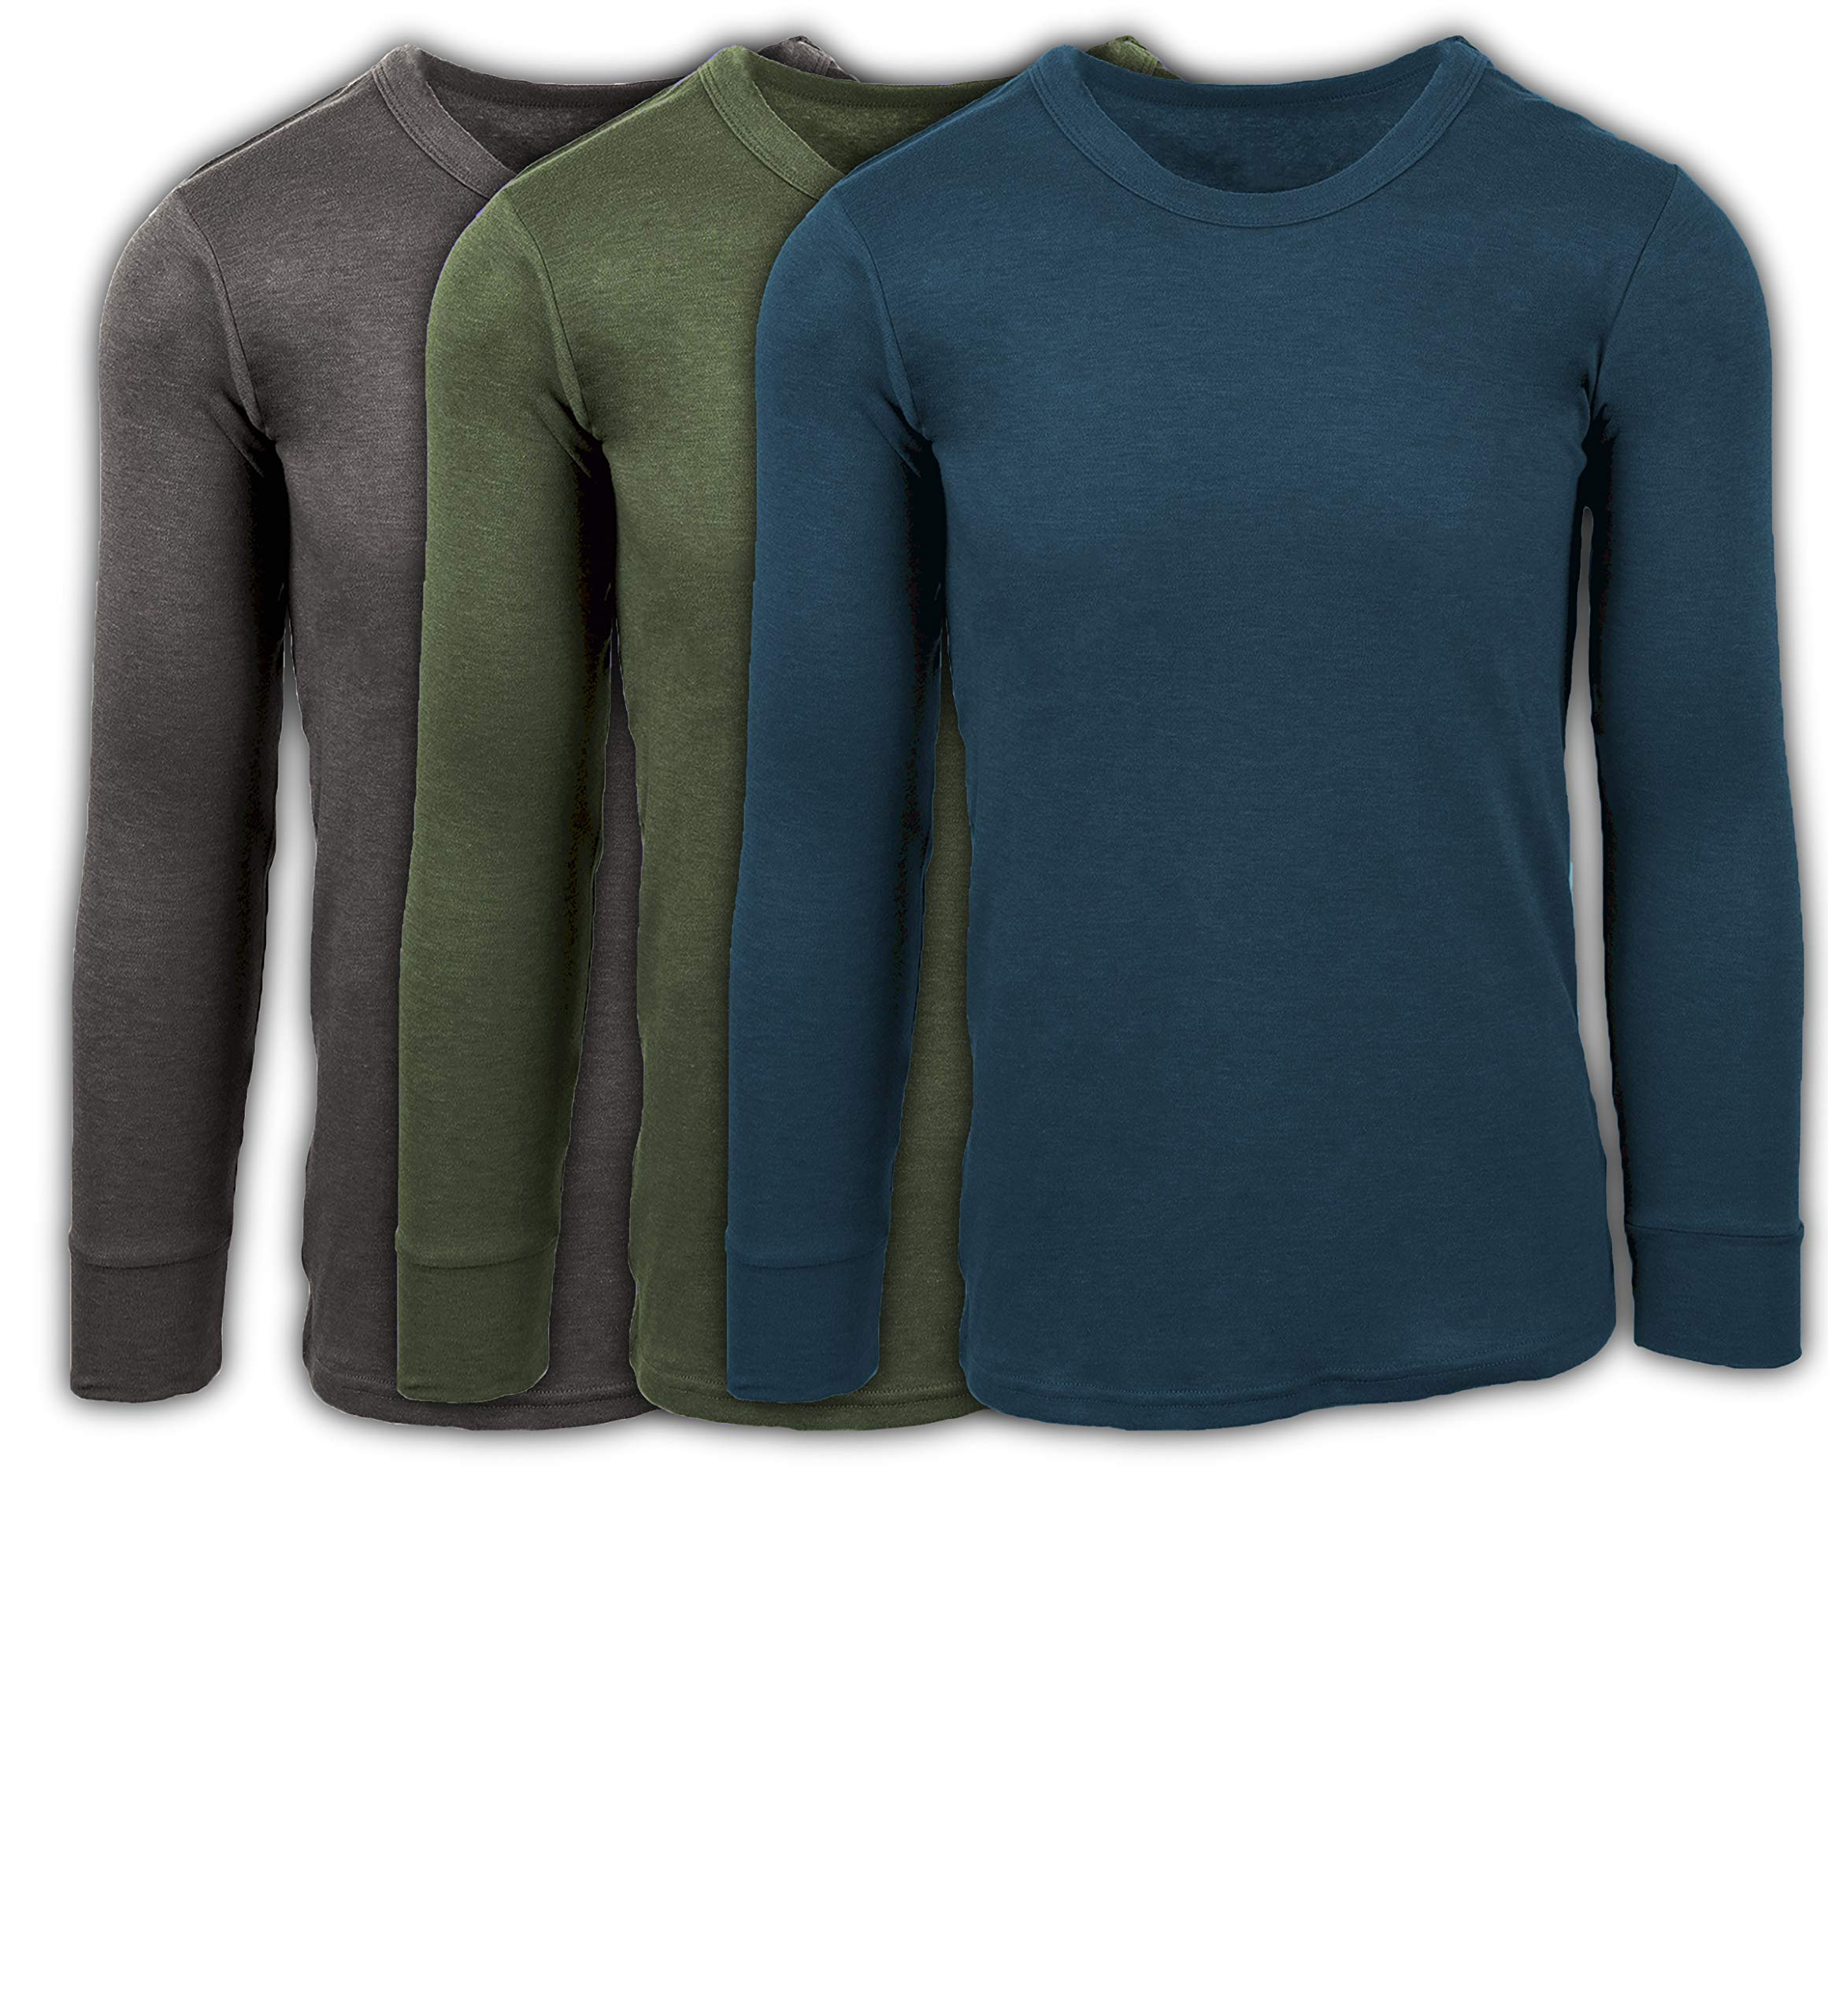 Andrew Scott Men's 3 Pack Premium Cotton Thermal Top Base Layer Long Sleeve Crew Neck Shirt (Small, 3 Pack- Charcoal/Olive/Legion Blue) by Andrew Scott